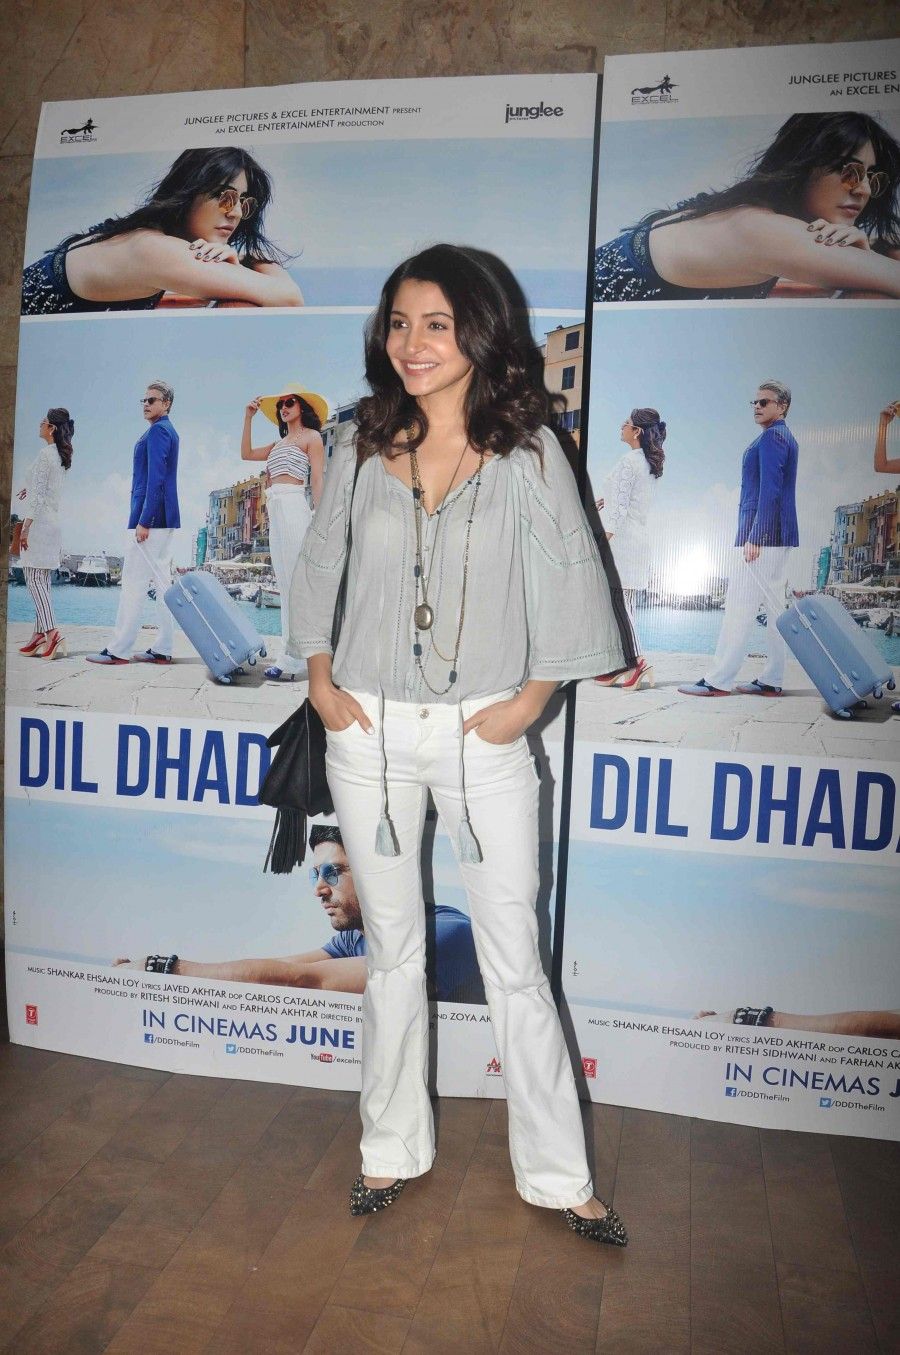 Anushka Sharma attending the special screening of 'Dil Dhadakne Do'.